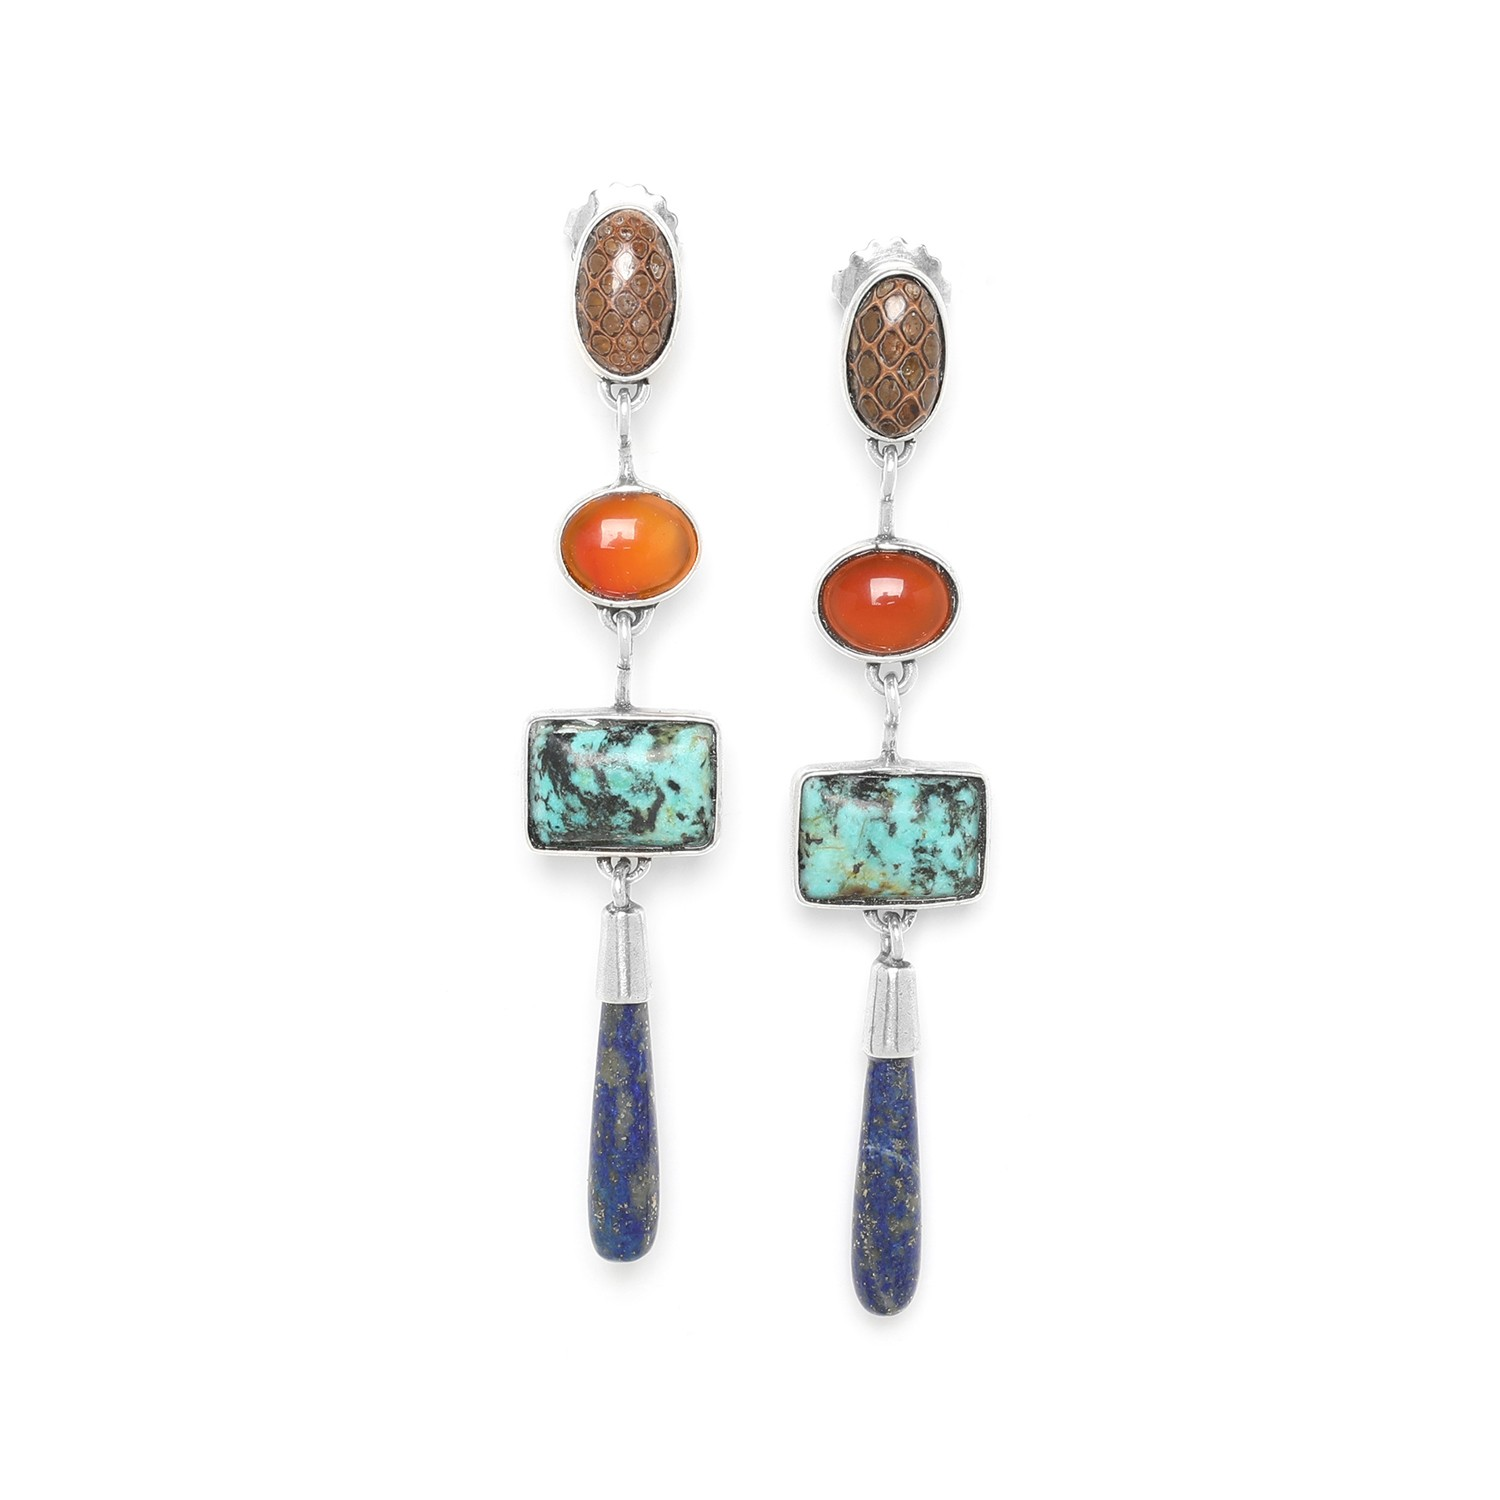 TRESORS lapis drop earrings